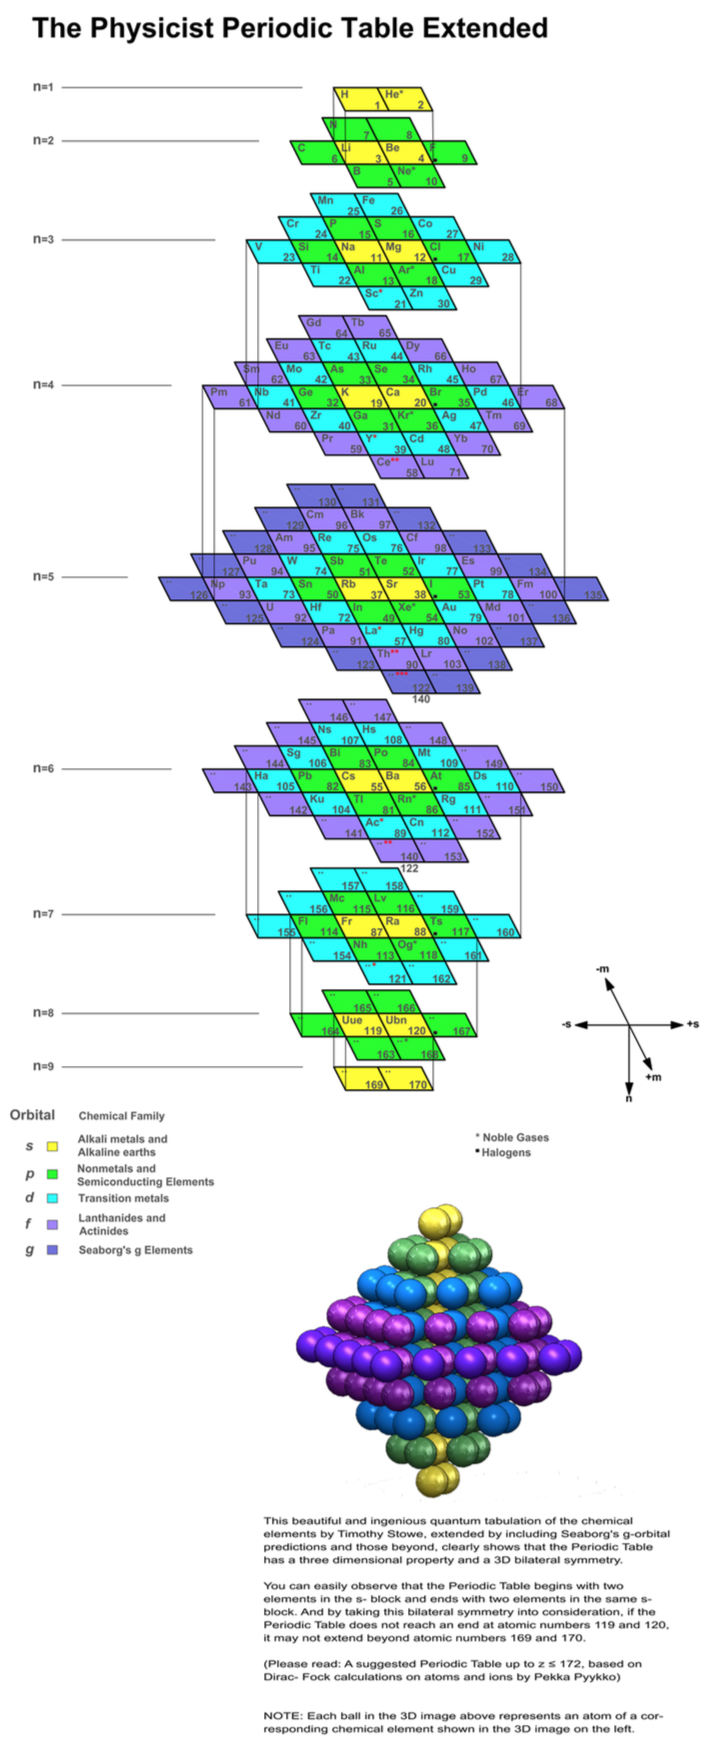 Periodic table database chemogenesis top of page gamestrikefo Image collections